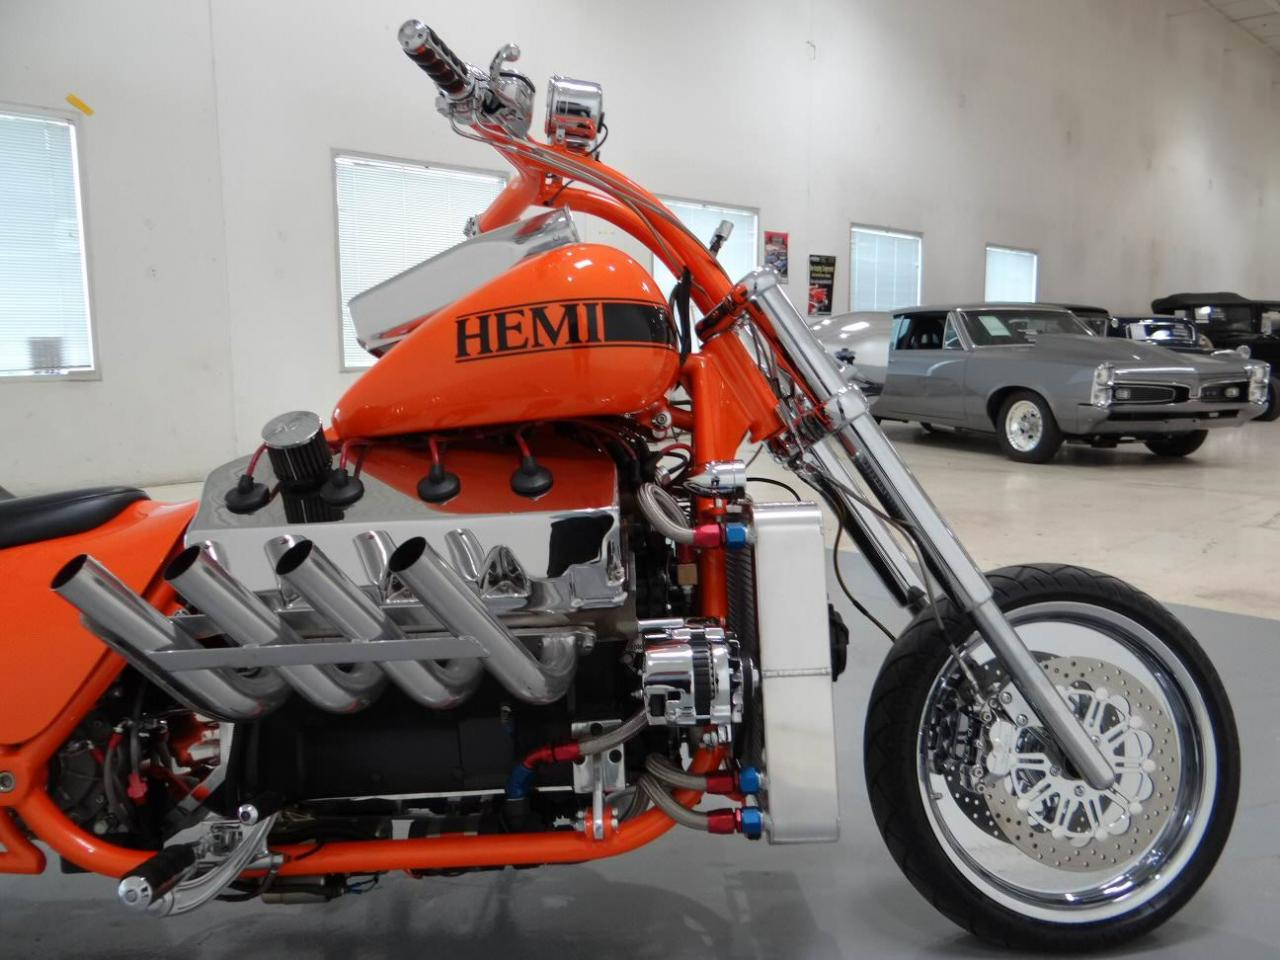 Custom Hemi 426 Chopper front half photo 24